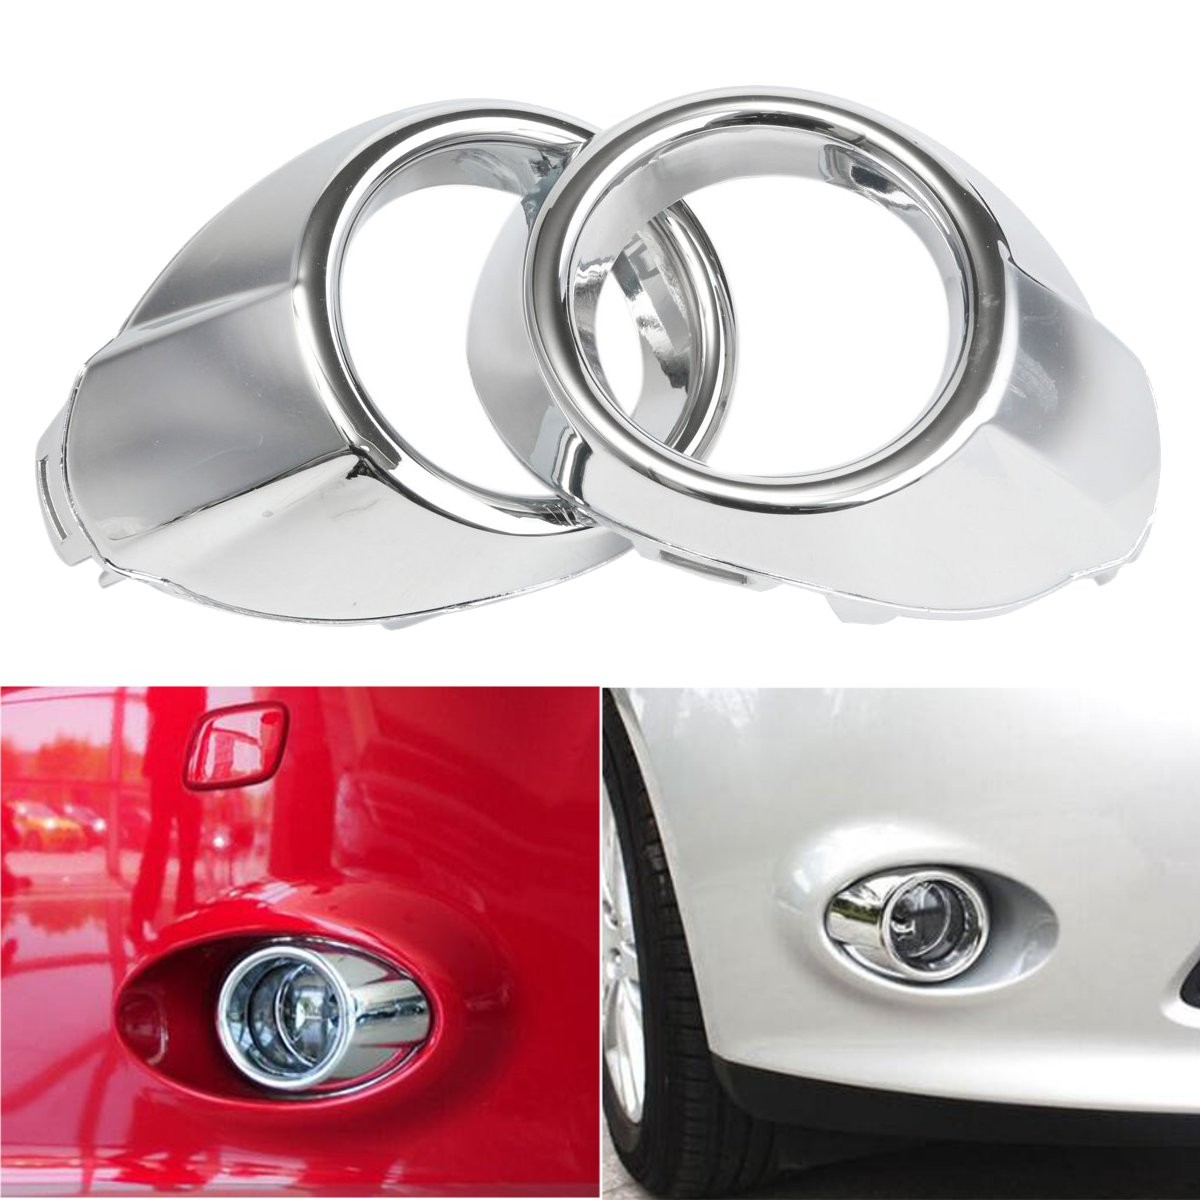 2Pcs Chrome Front Fog Light Lamp Cover Bezels Trim For Ford /Focus 2012-2014